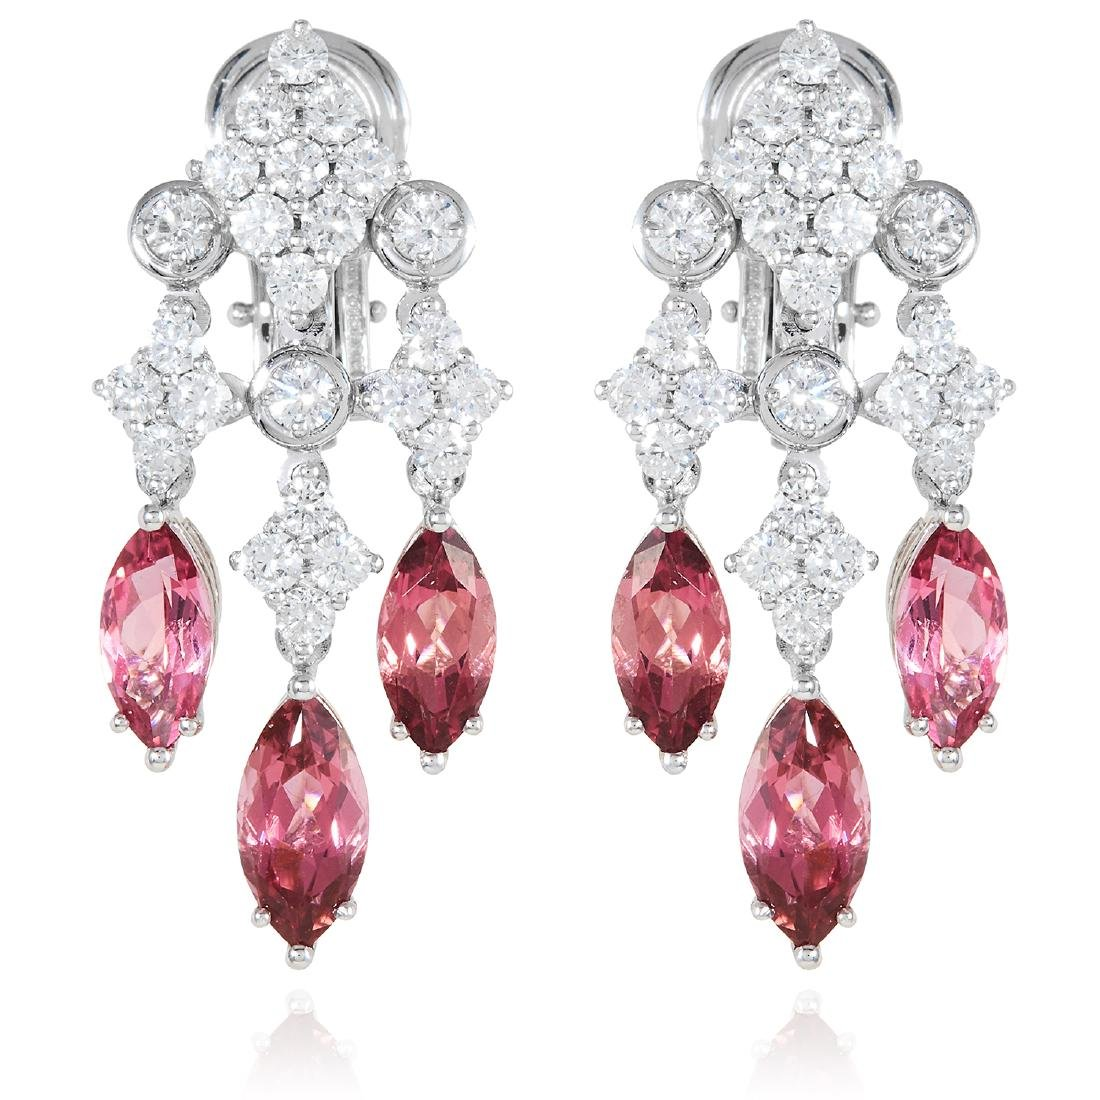 A PAIR OF TOURMALINE AND DIAMOND CHANDELIER EARRINGS,